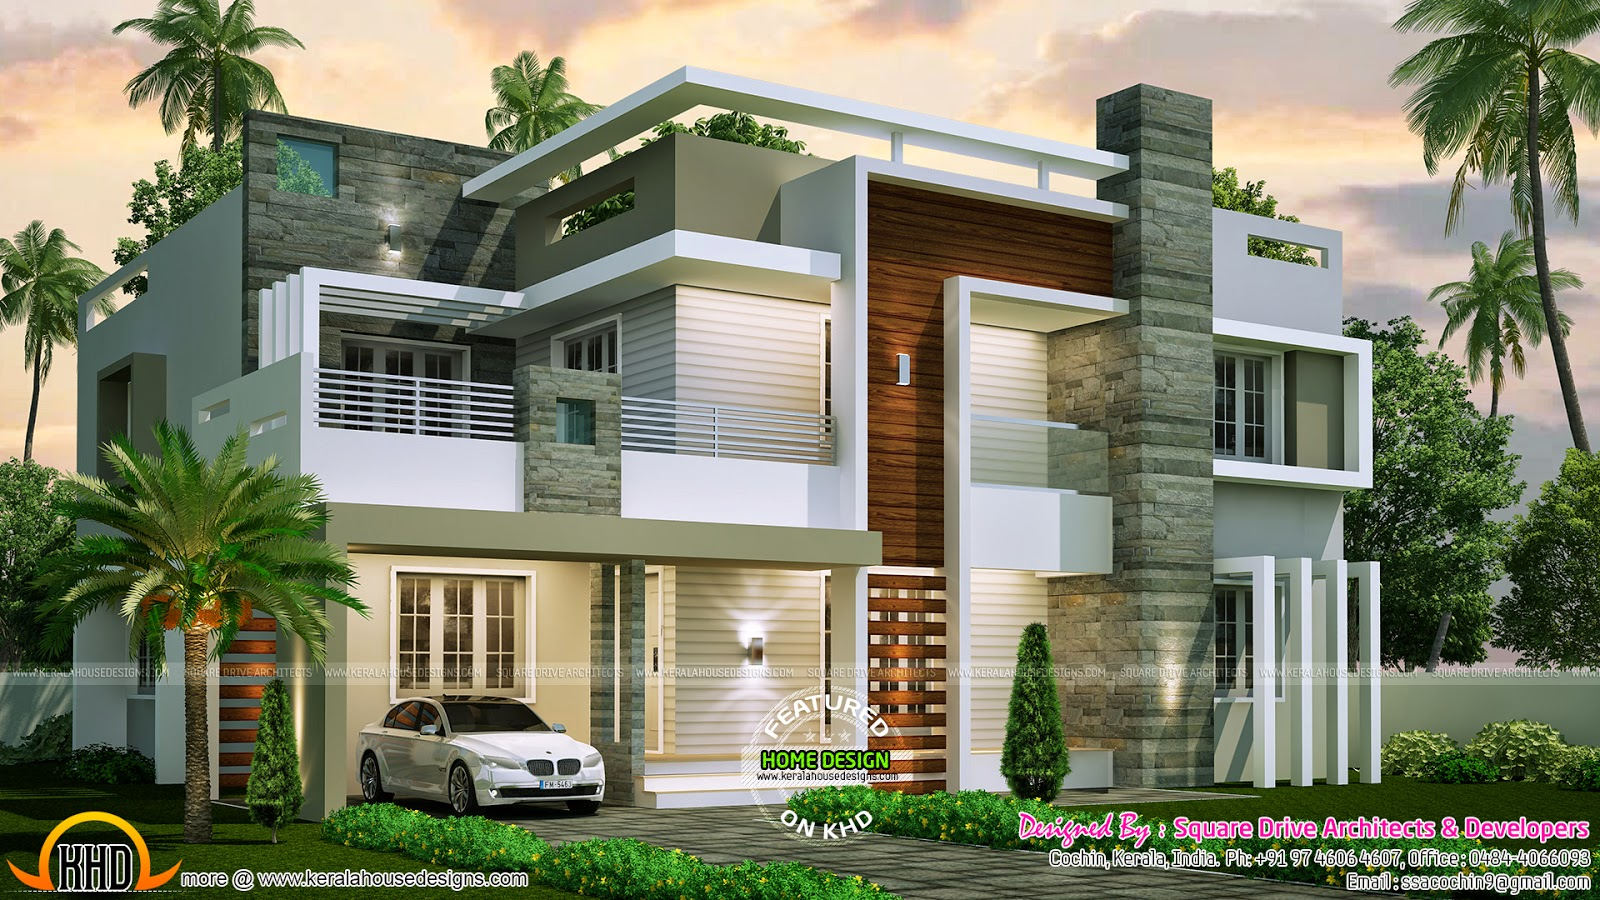 4 bedroom contemporary home design kerala home design for In home design